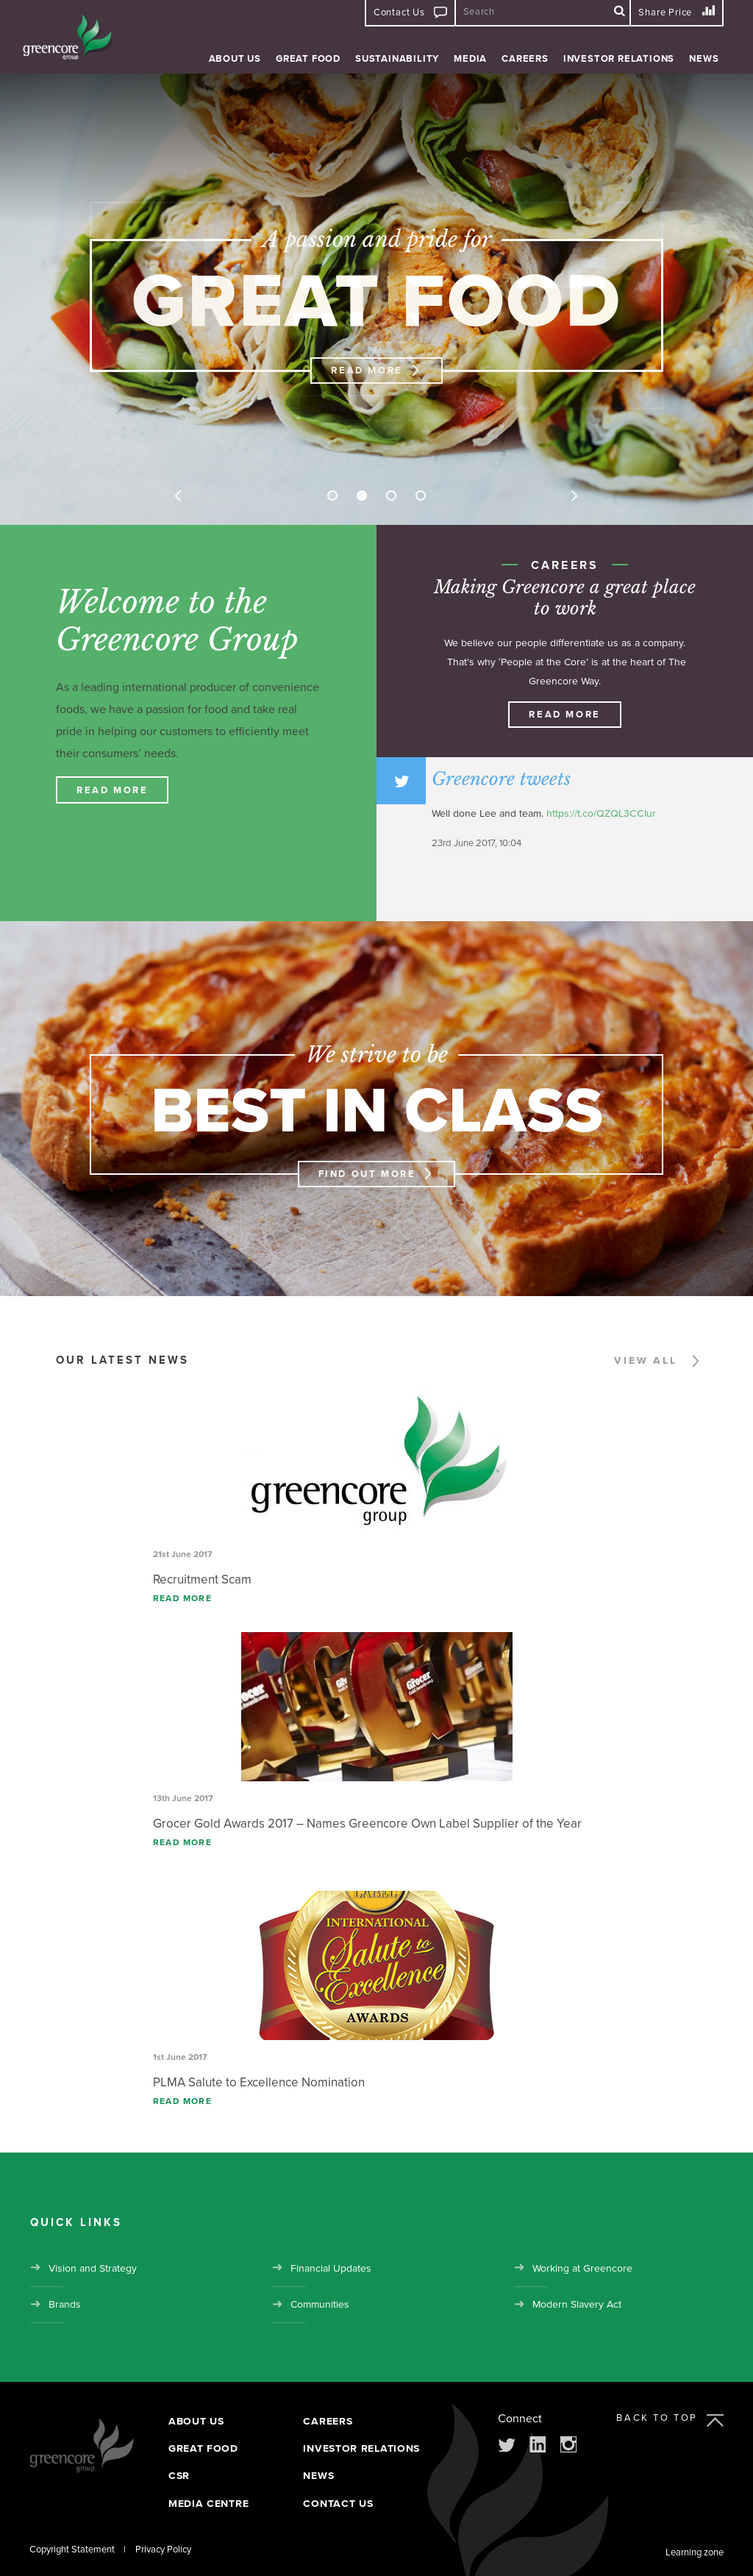 company overview greencore With a hoovers subscription you can get a comprehensive view of greencore  group public limited company.